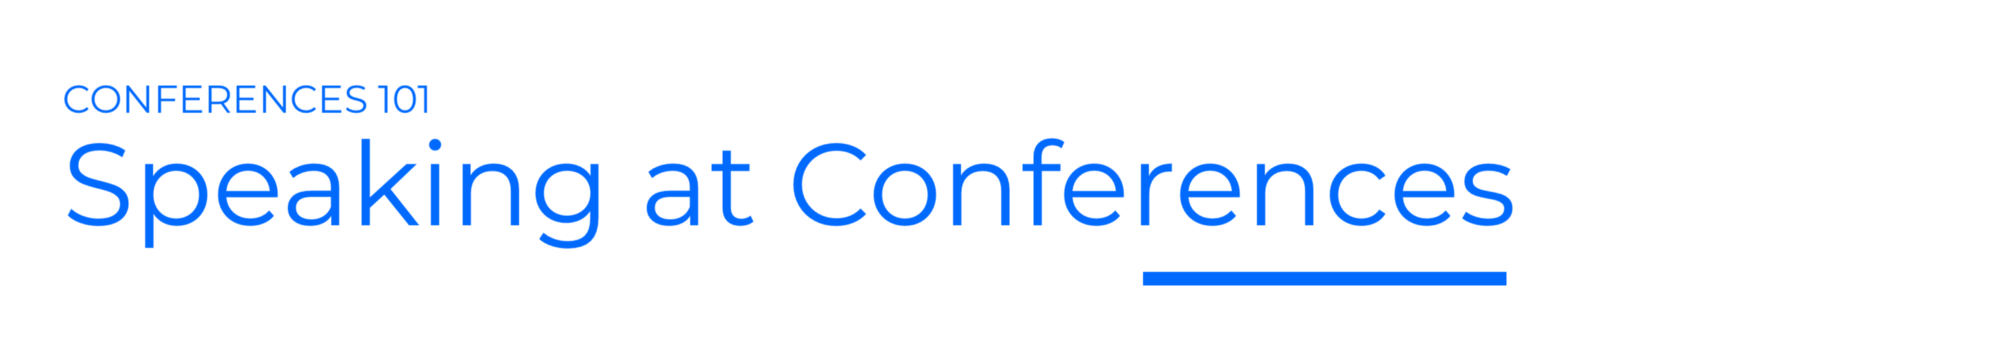 Speaking at conferences; conferences 101